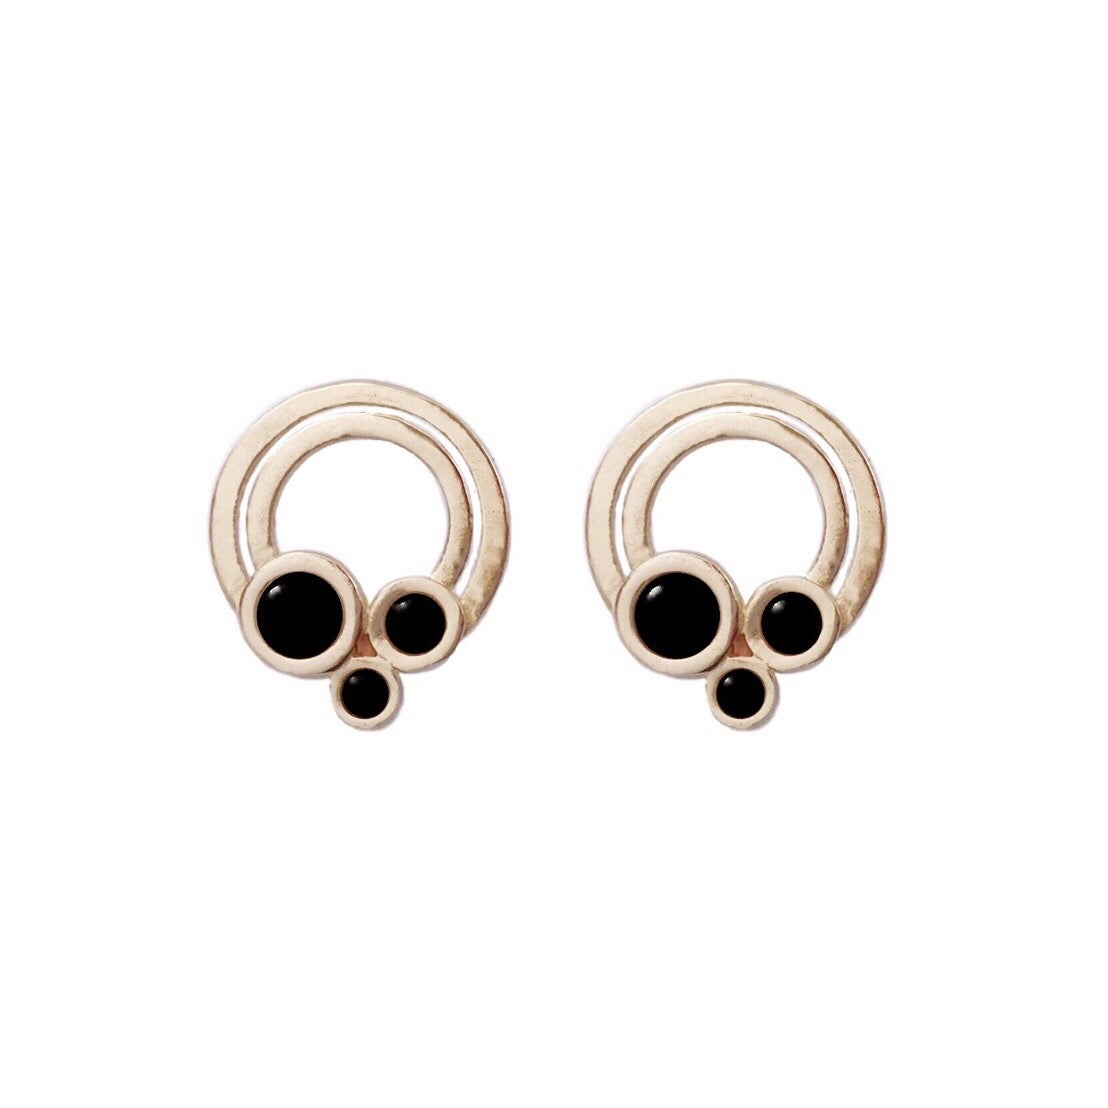 Image of Small Rainbow Earrings with Black Onyx